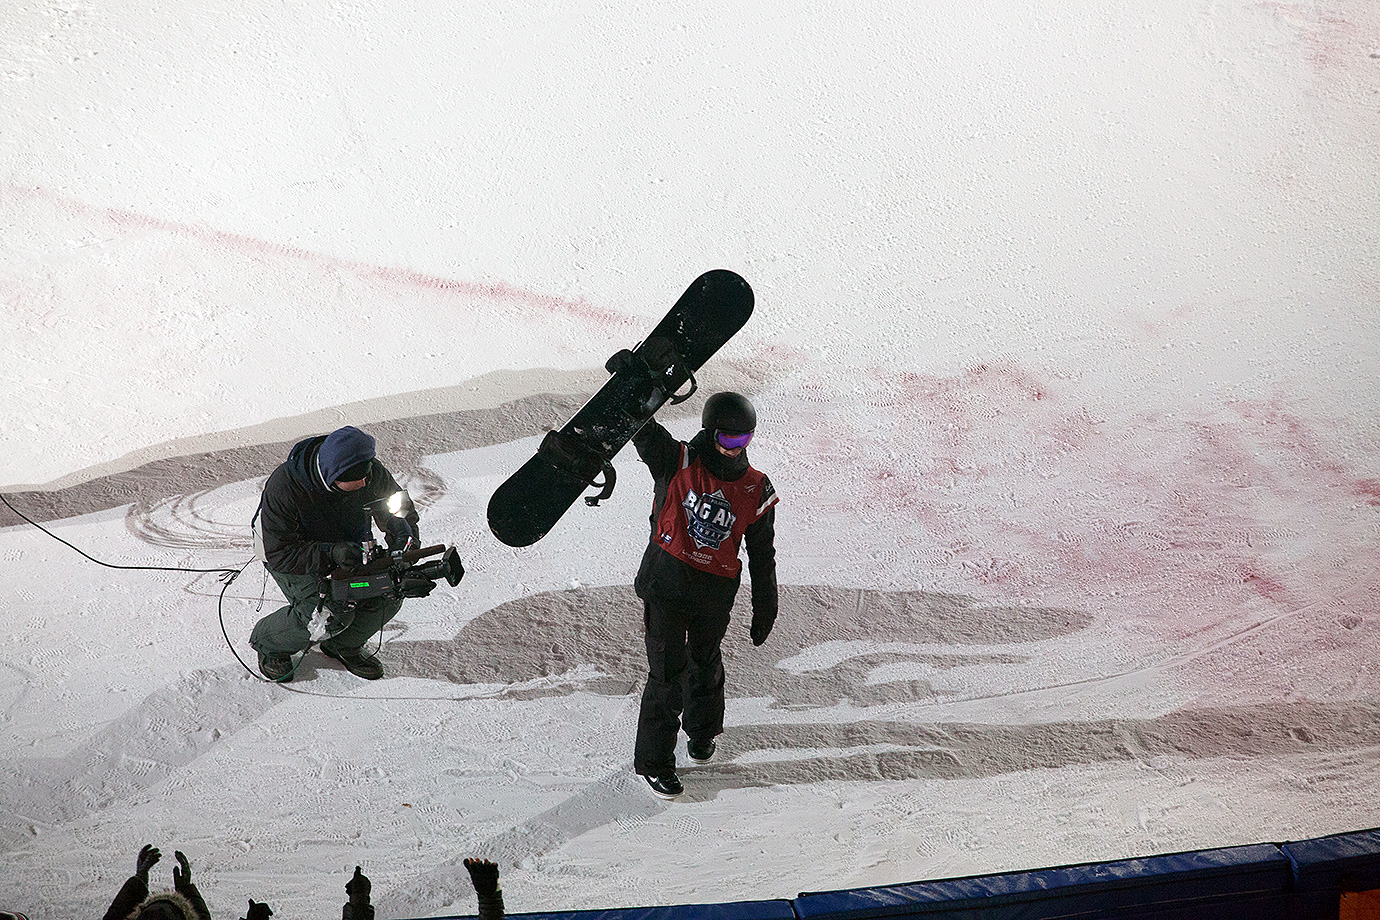 Max Parrot acknowledges the Fenway crowd after completing his second run, which earned him the top score of the competition.